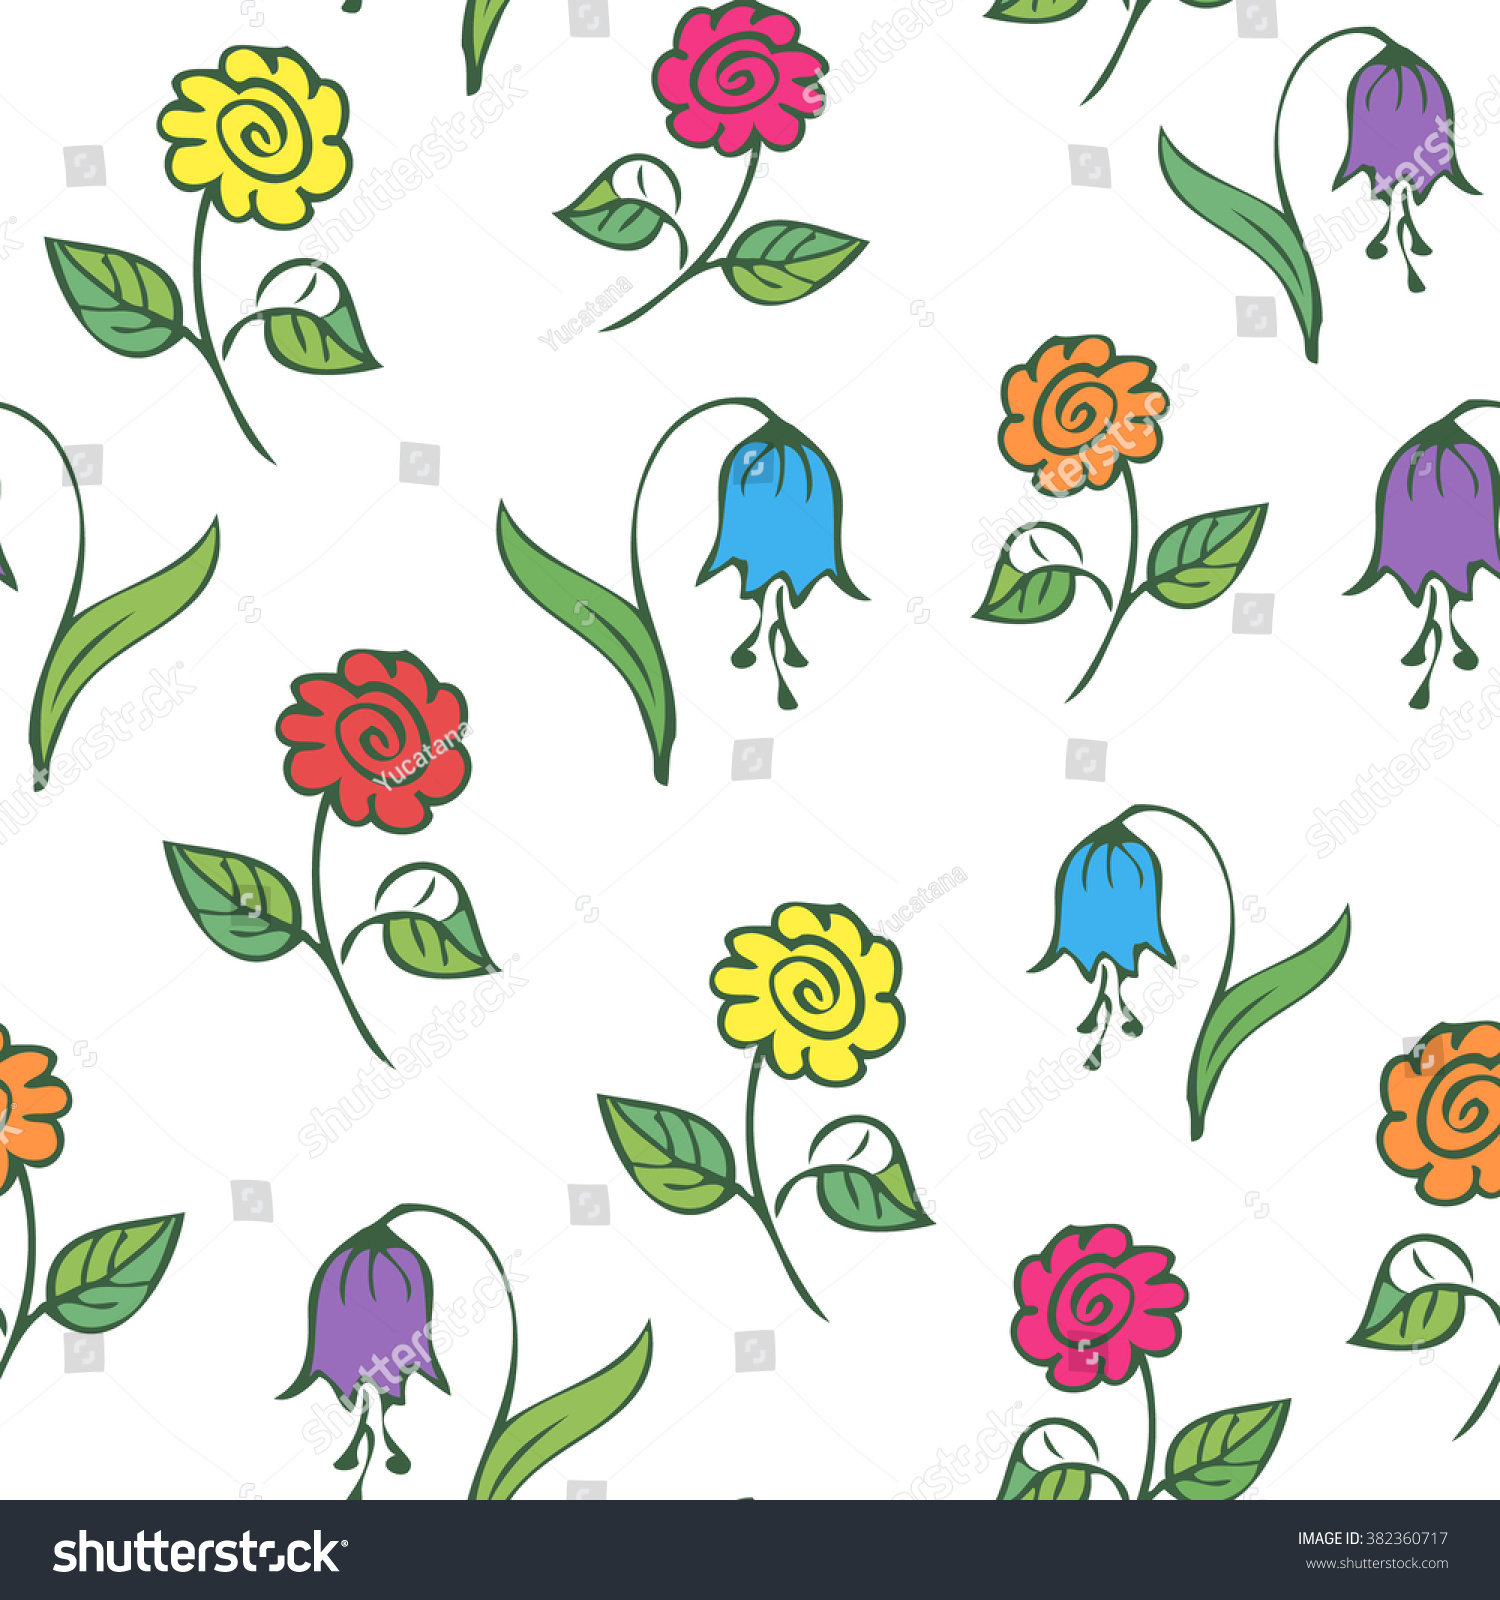 Seamless Minimalist Floral Pattern Doodle Colorful Nature